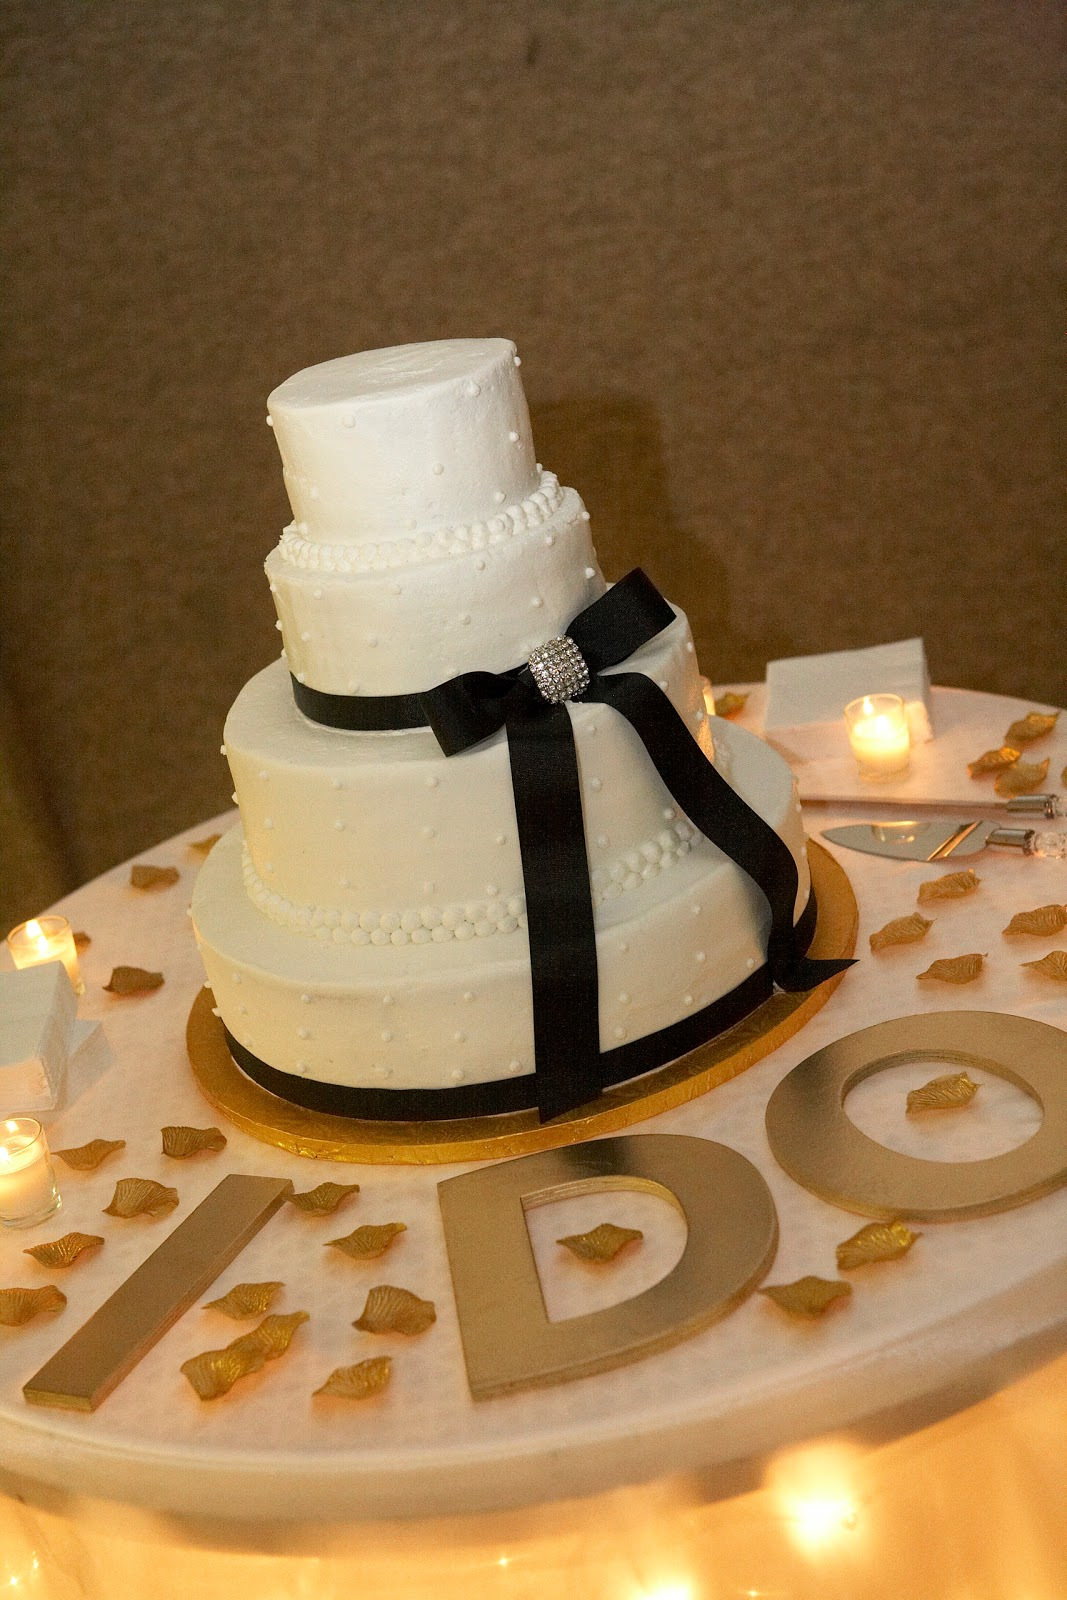 Images Of Cake Tables For A Wedding : Wedding Cake Display Table on Pinterest Cake Table ...